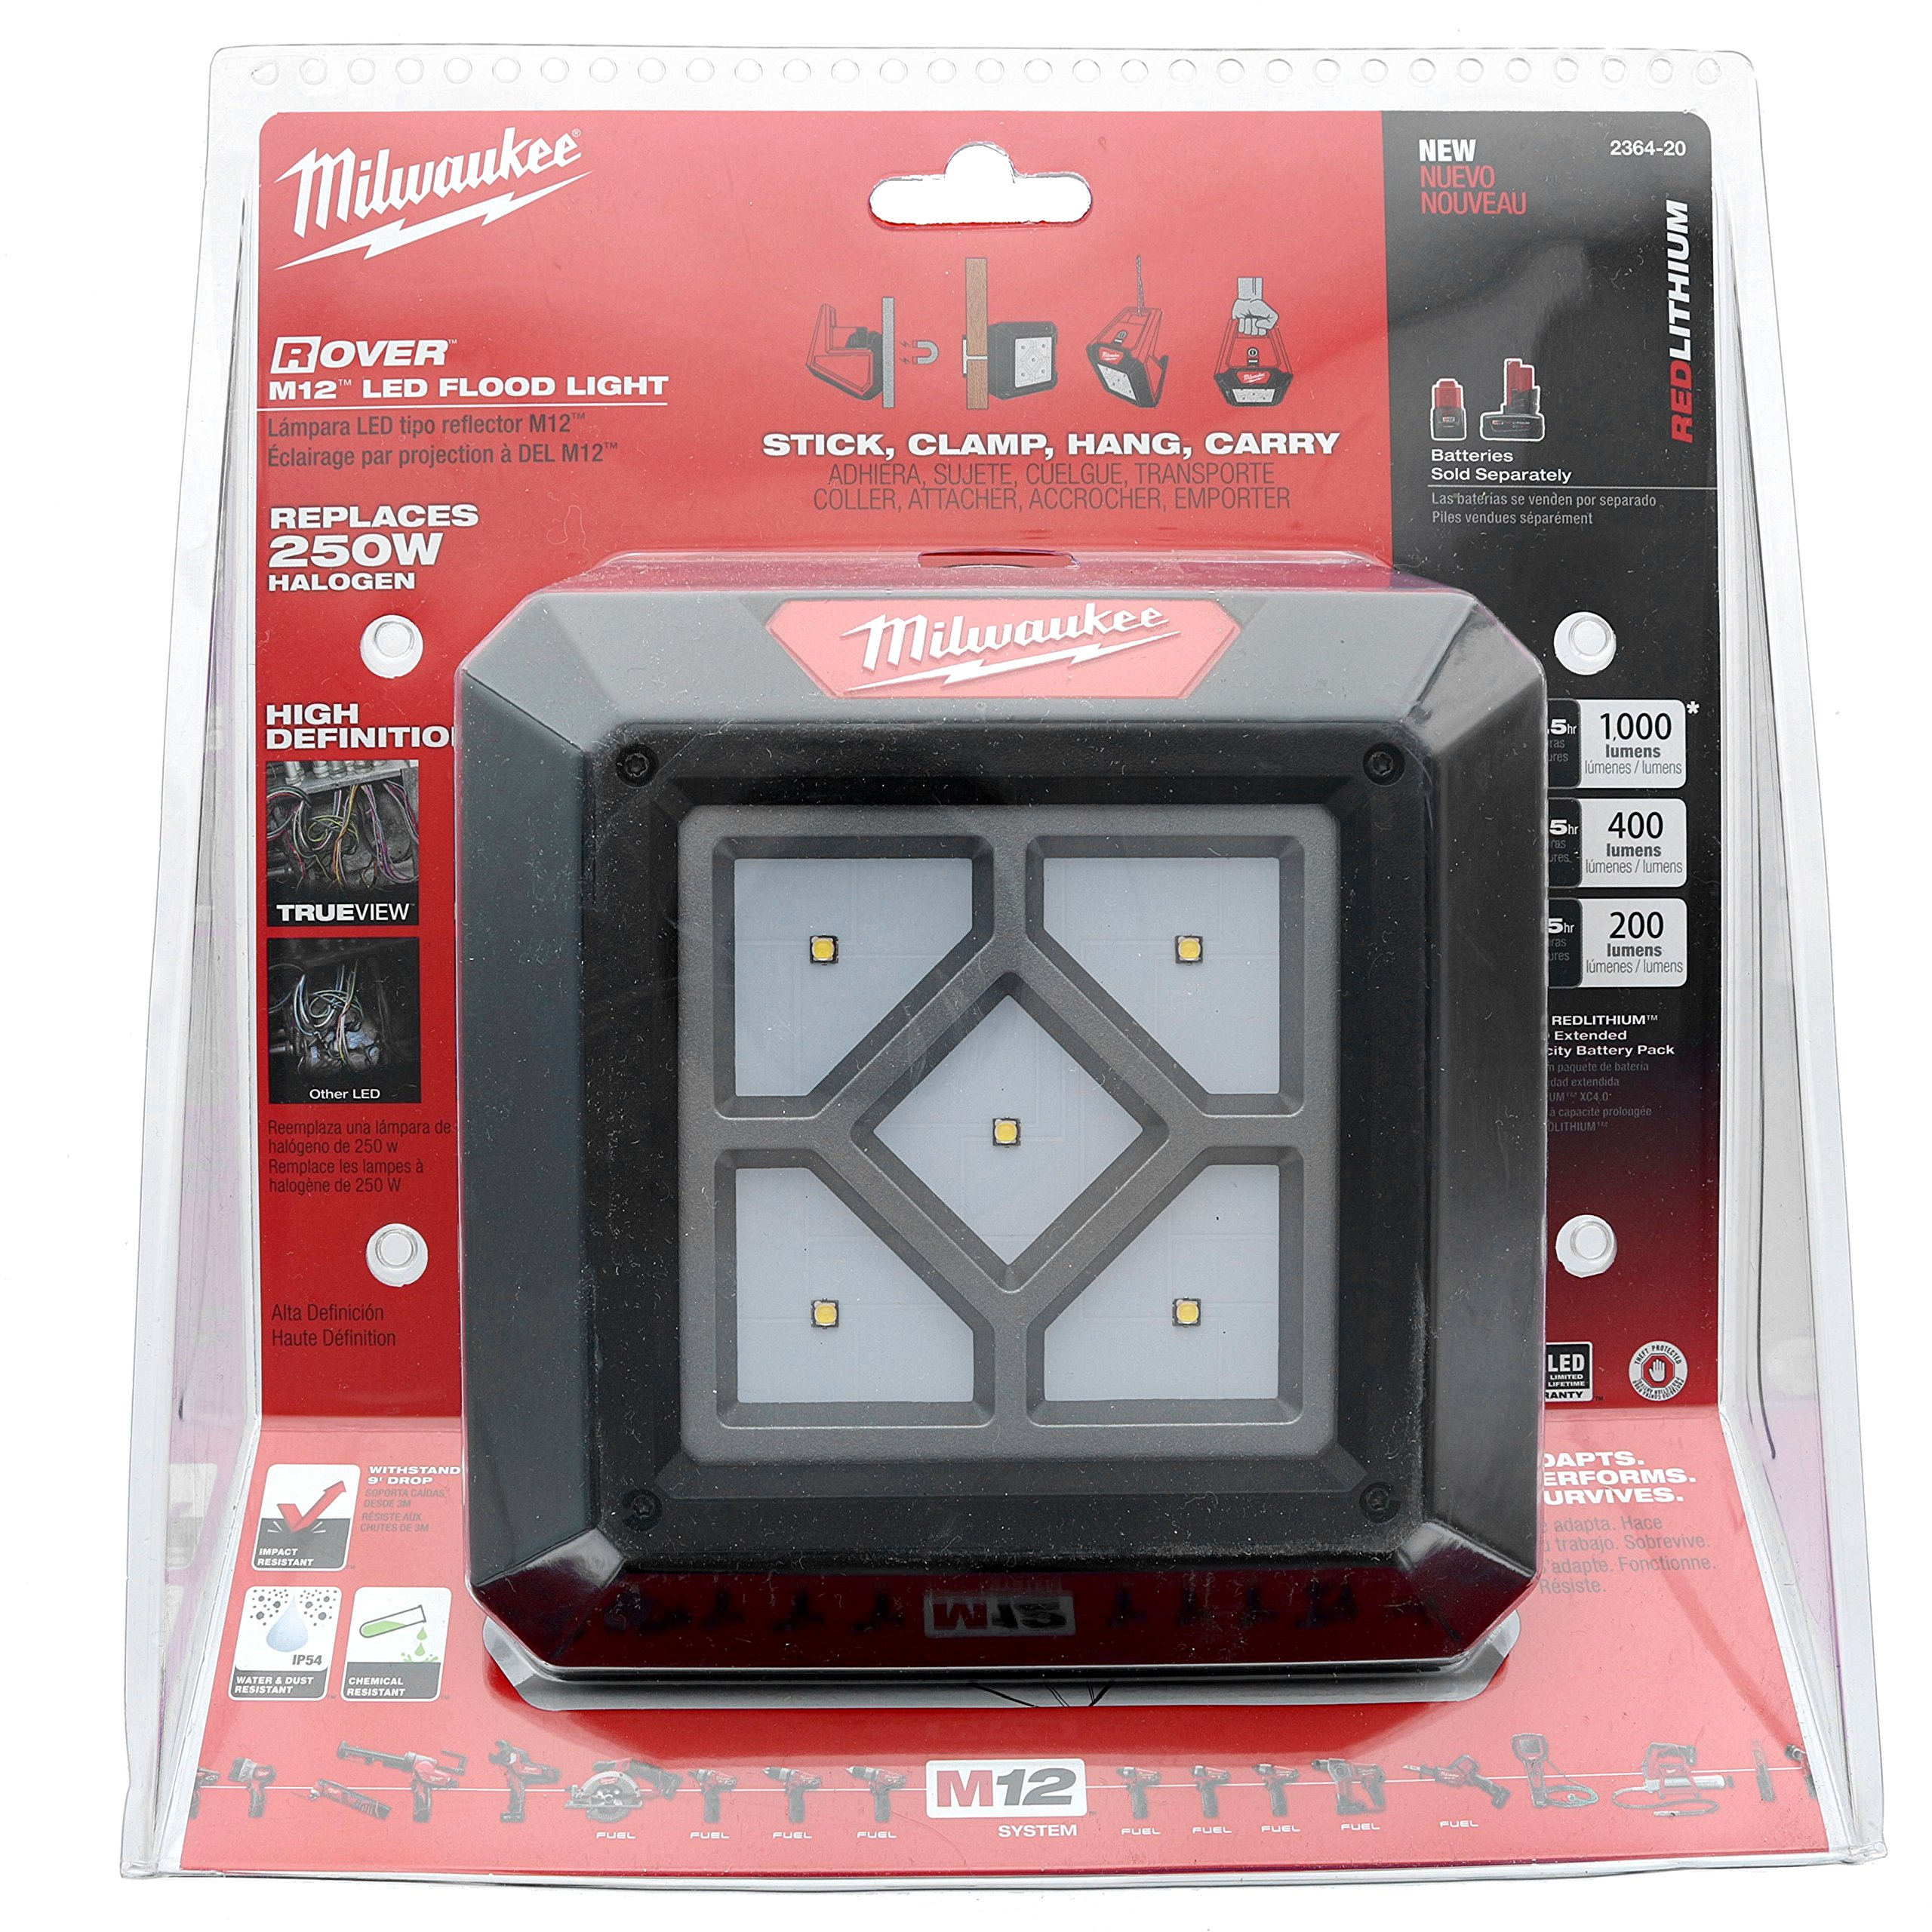 Milwaukee 2364-20 M12 Rover 12 Volt Lithium Ion 1,000 Lumen 250W Replacement Compact Flood Light